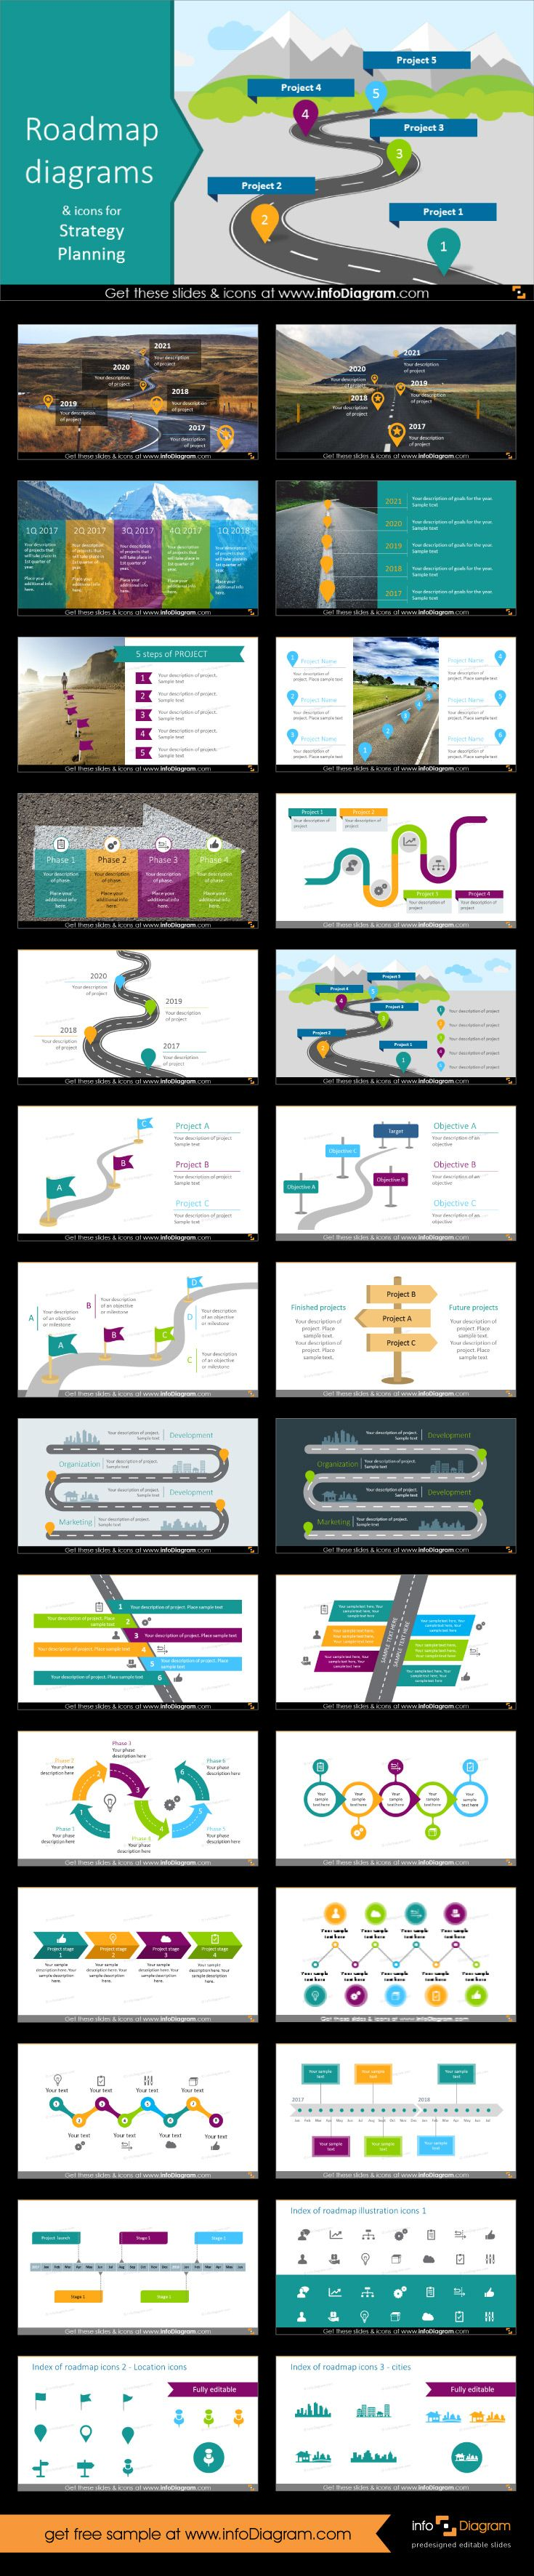 Roadmap diagrams Presentation template with various roadmap diagrams and timeline infographics for creating strategy and project plans. Using editable roadmap shapes you can easily show long-term milestones or present a project objectives or stages over a year.